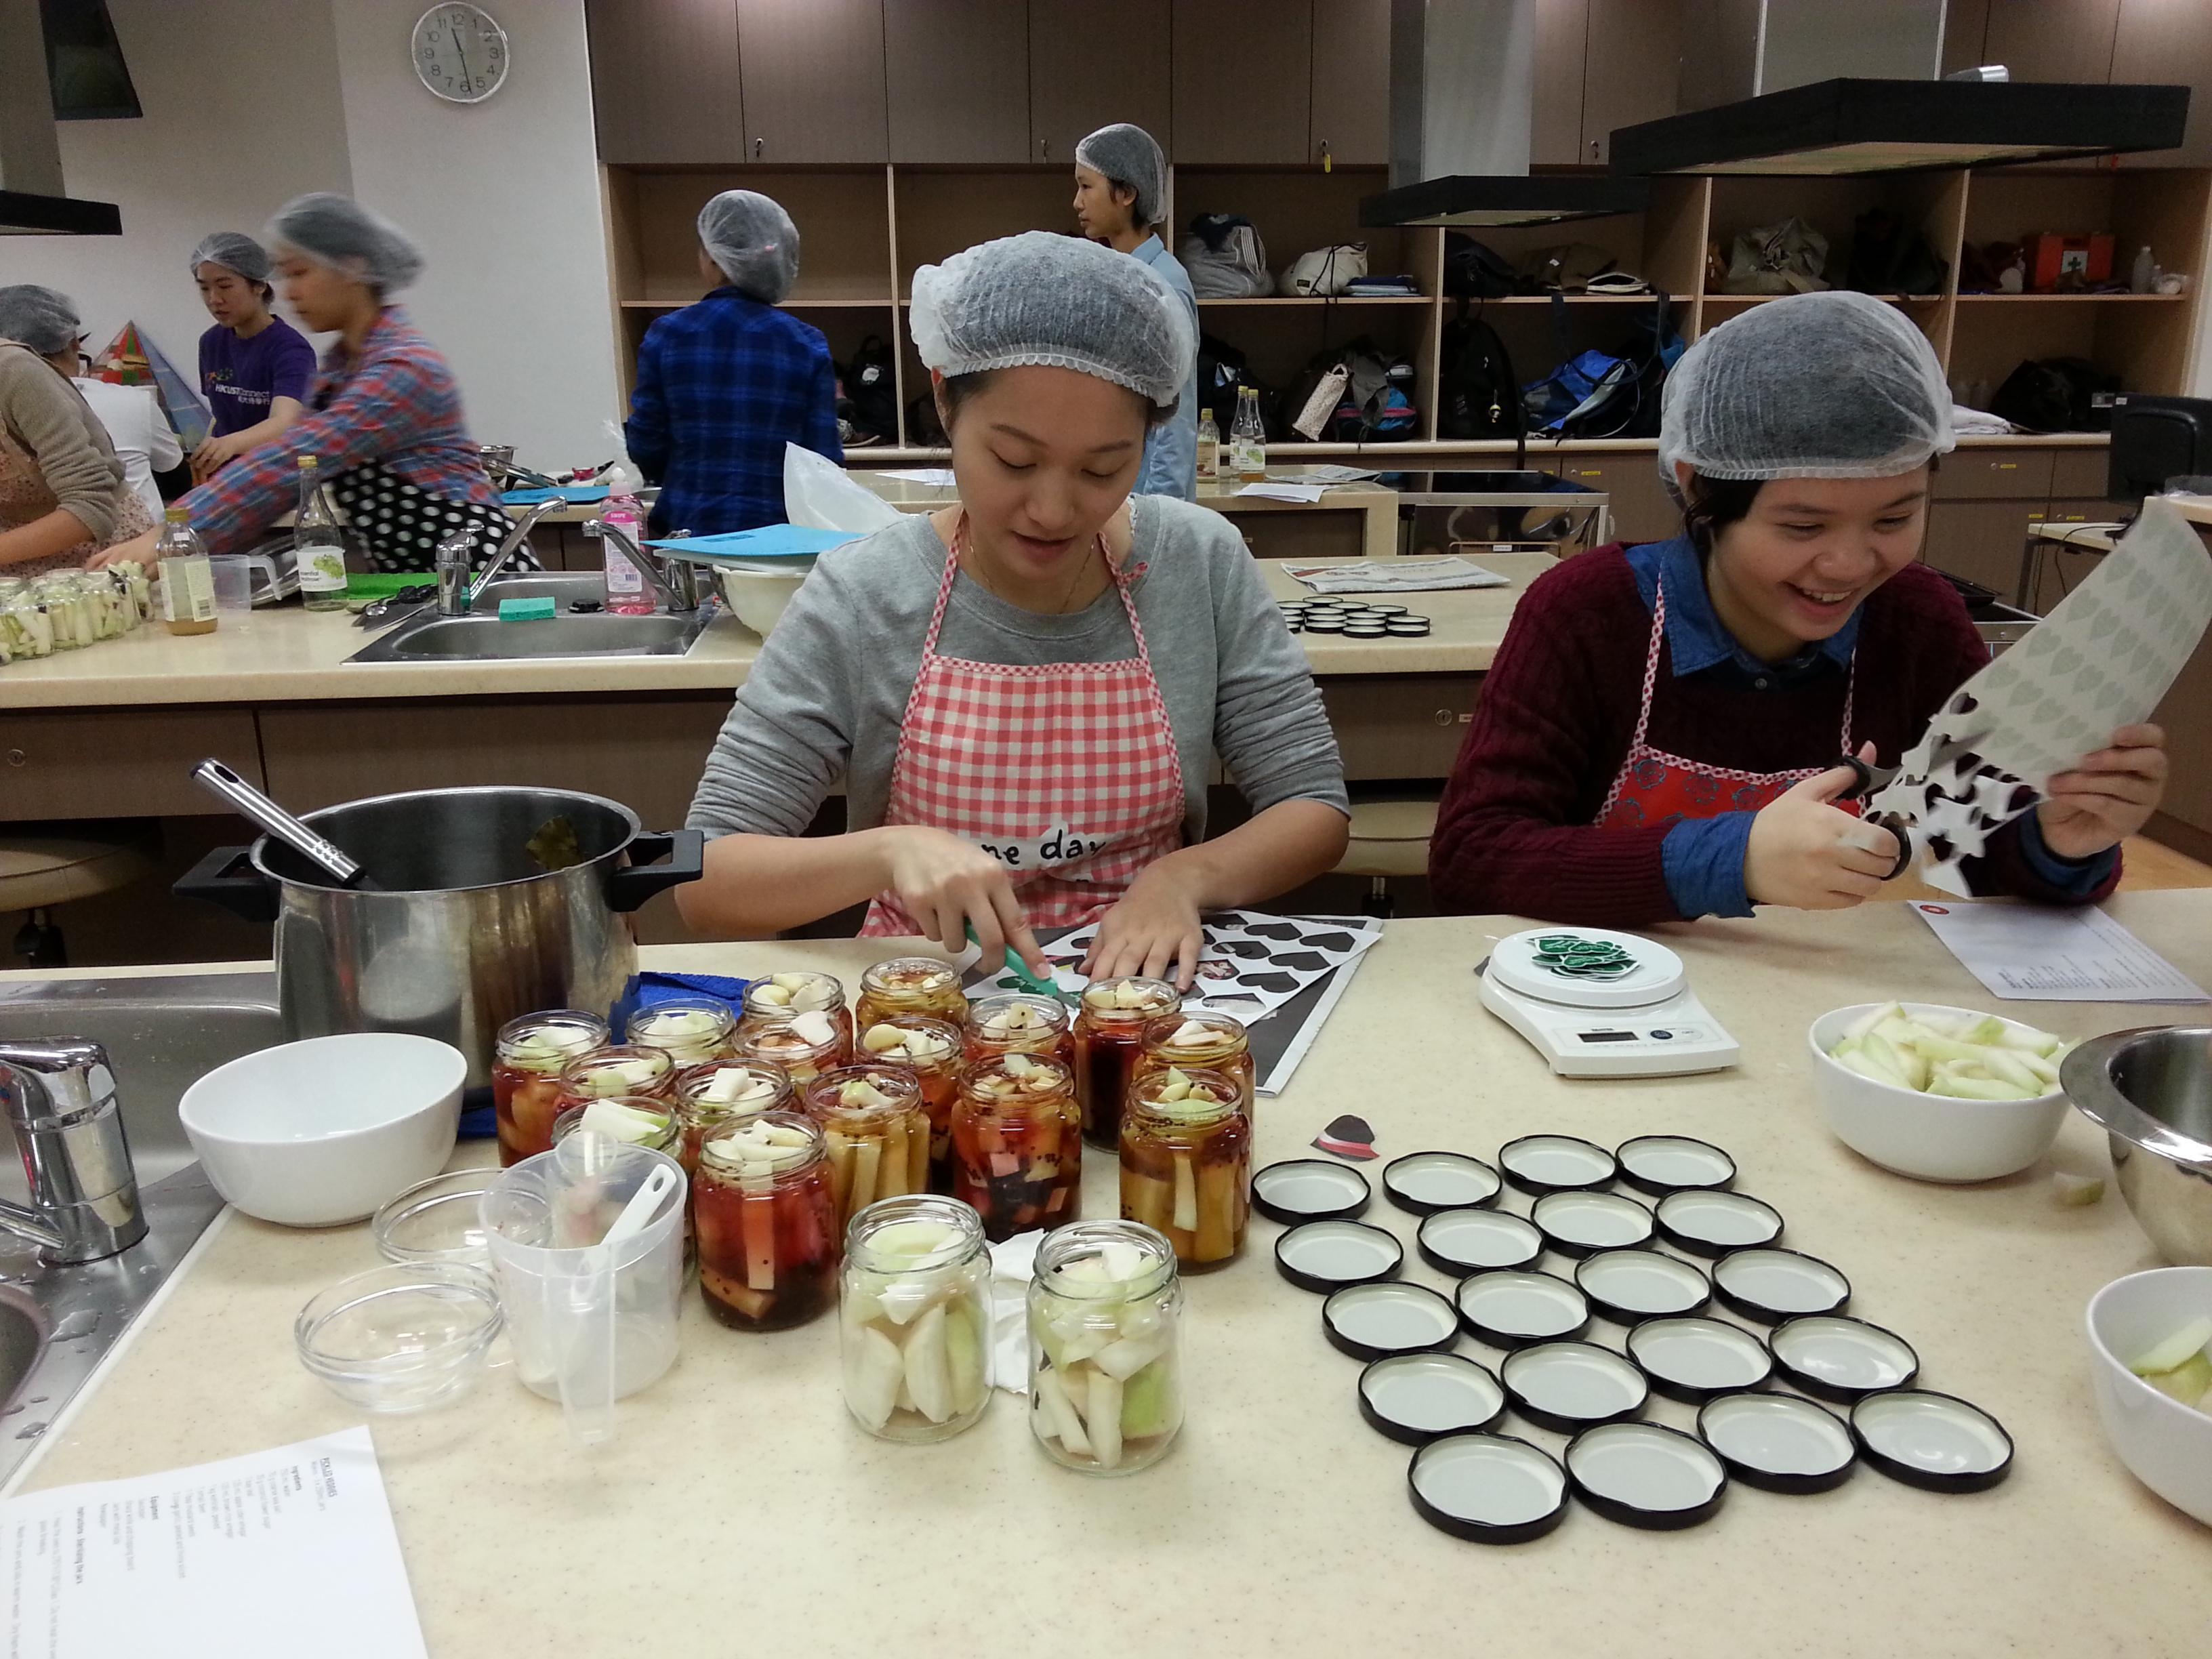 Feeding Hong Kong - Make Festive Treats for the Needy - Photo - 23